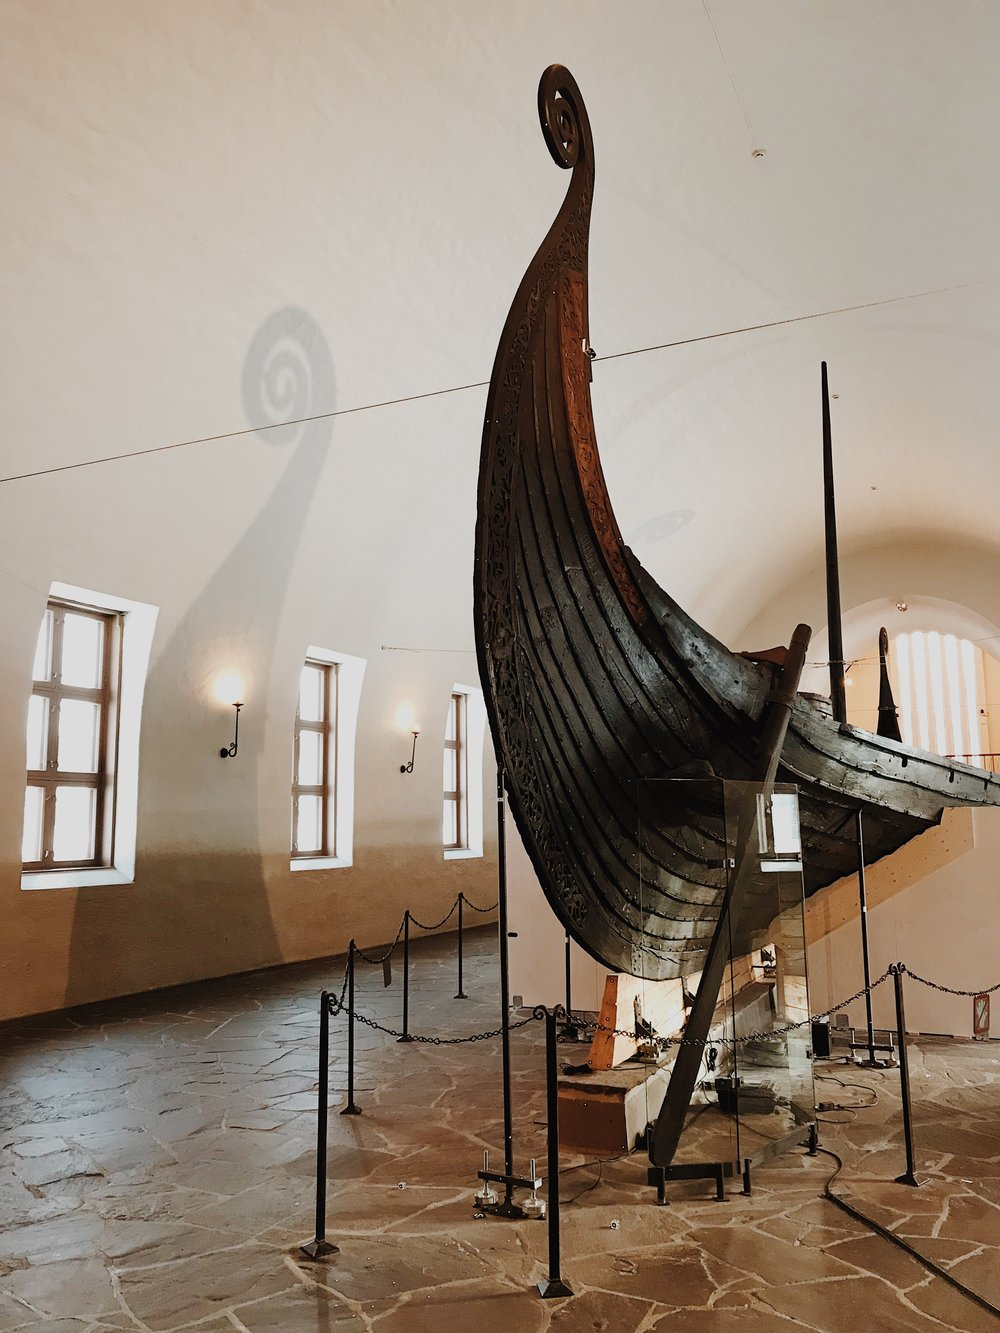 Viking Museum - Oslo, Norway